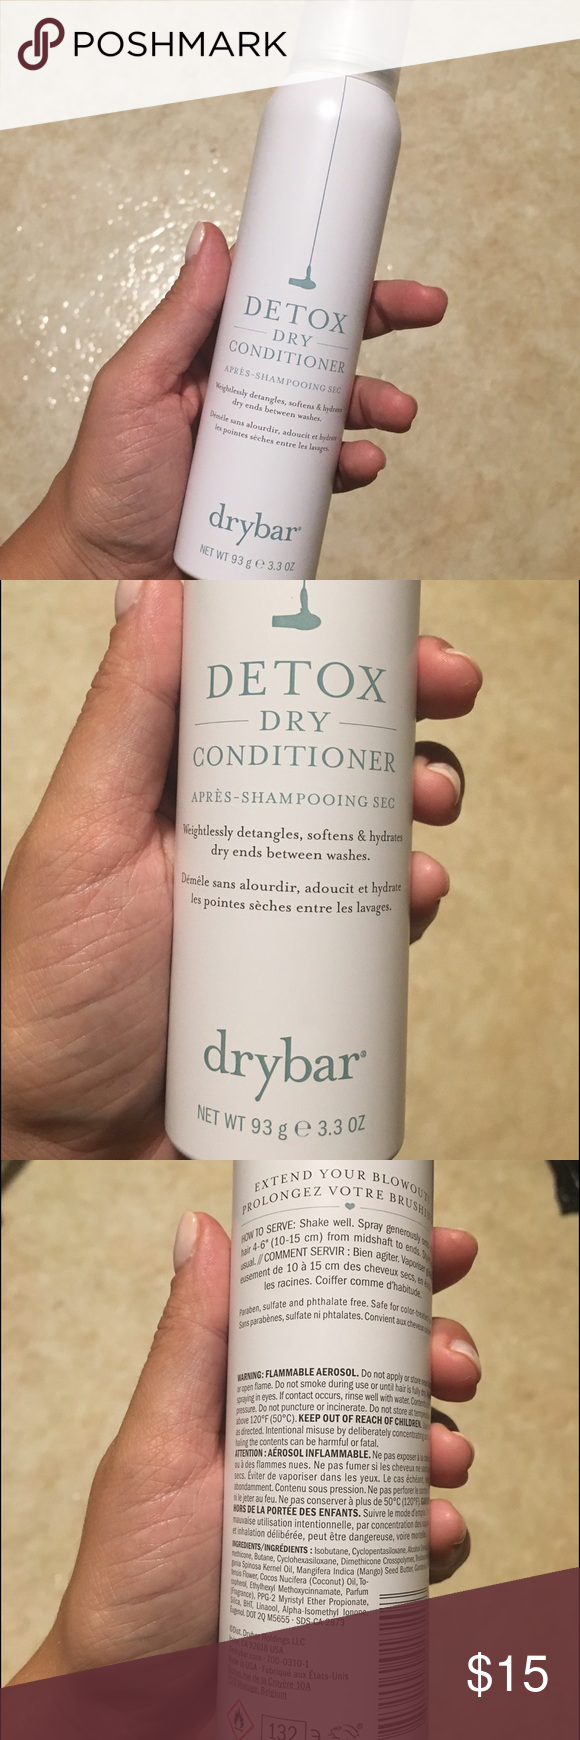 Drybar Detox Dry Conditioner Brand new, full size! Smells great :) Drybar Makeup Brushes & Tools